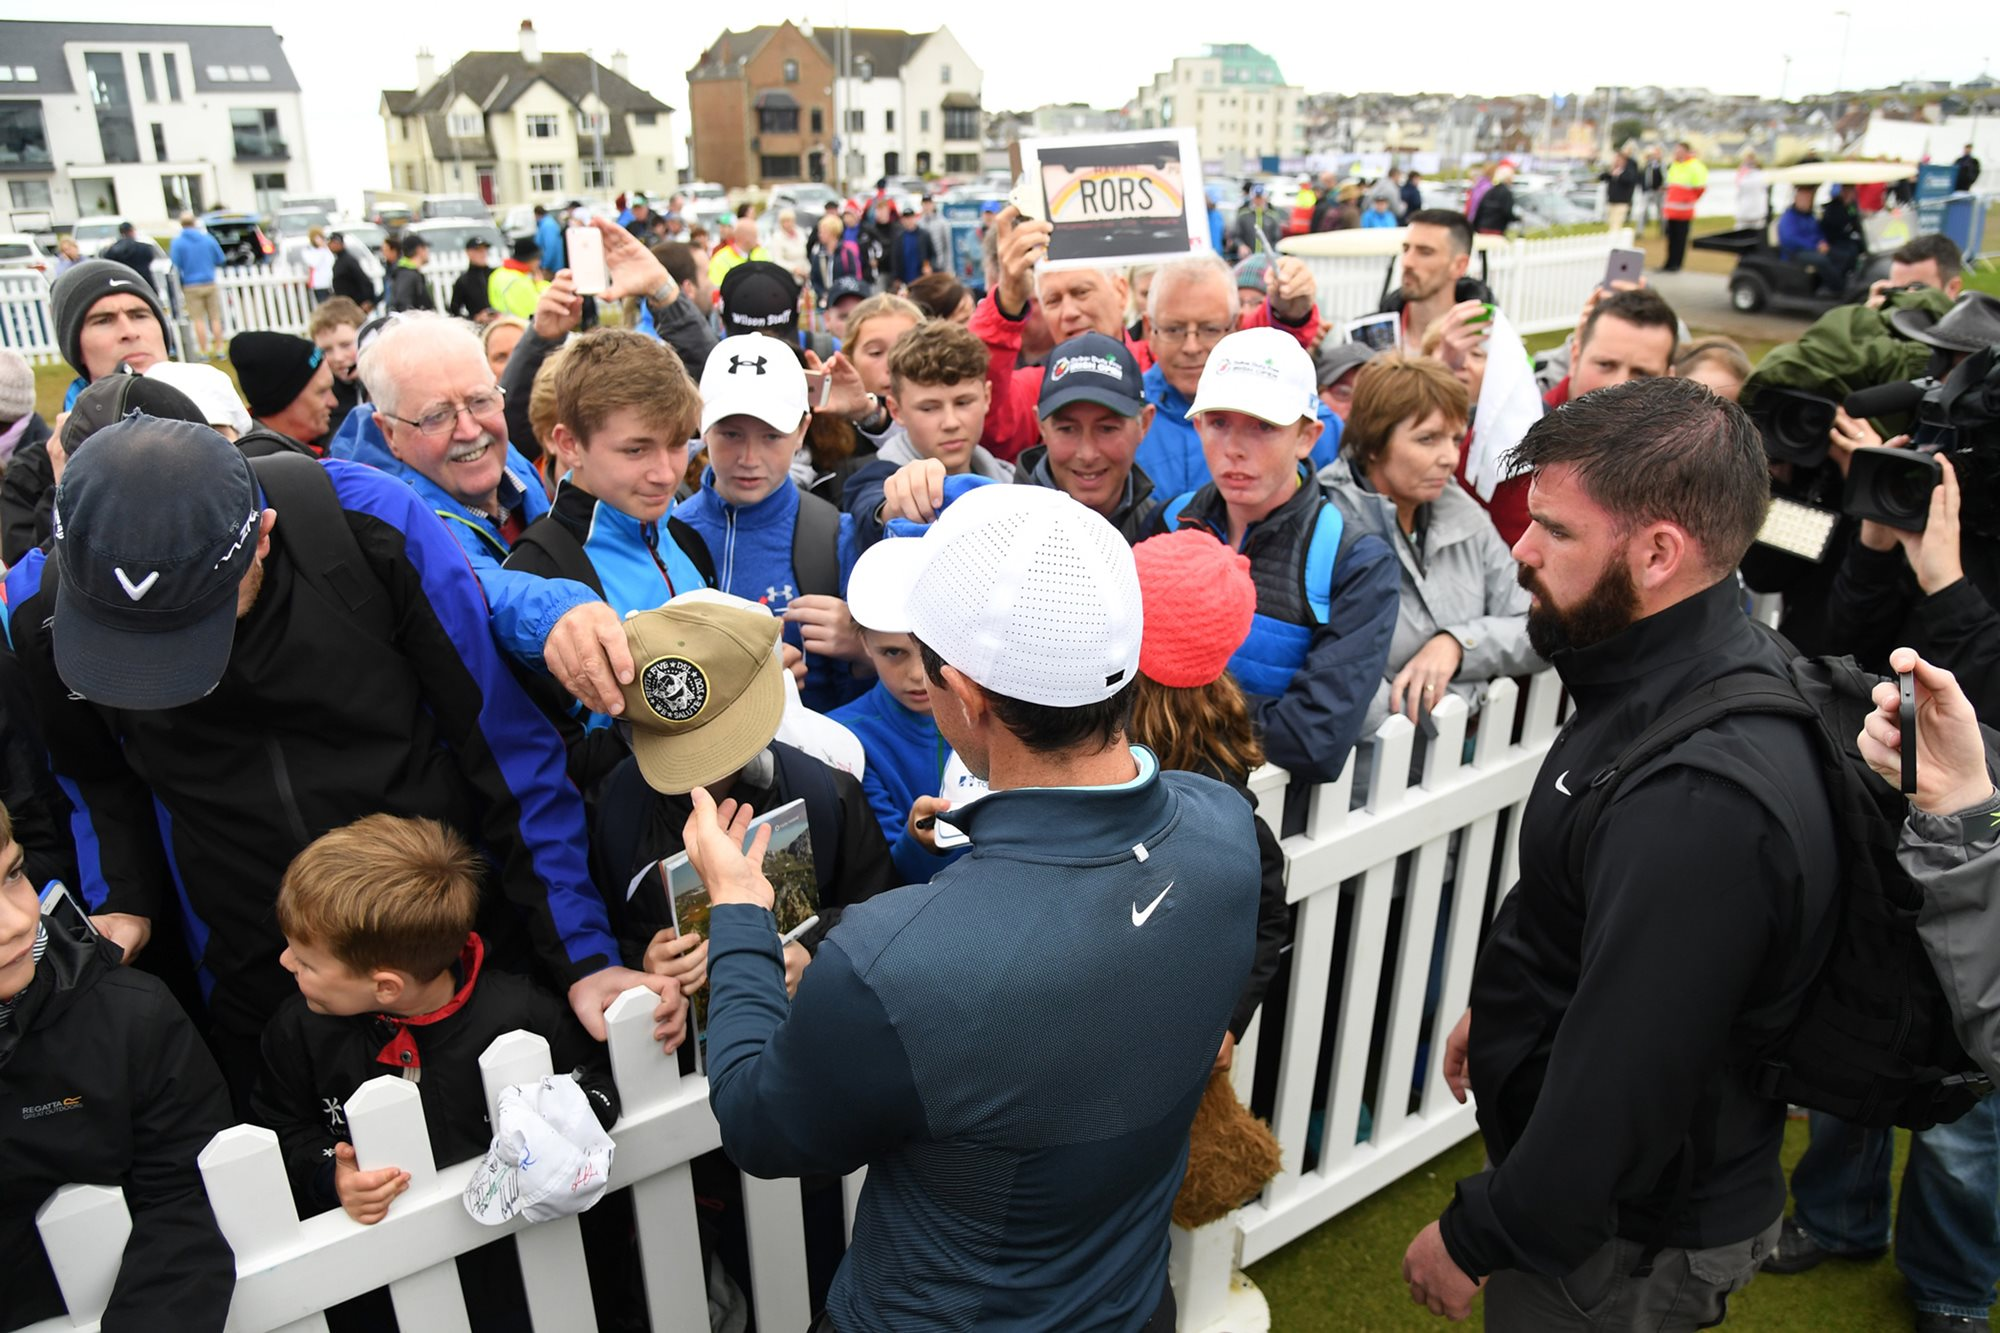 Portstewart-Golf-Club-810208414_RORY-MCILROY